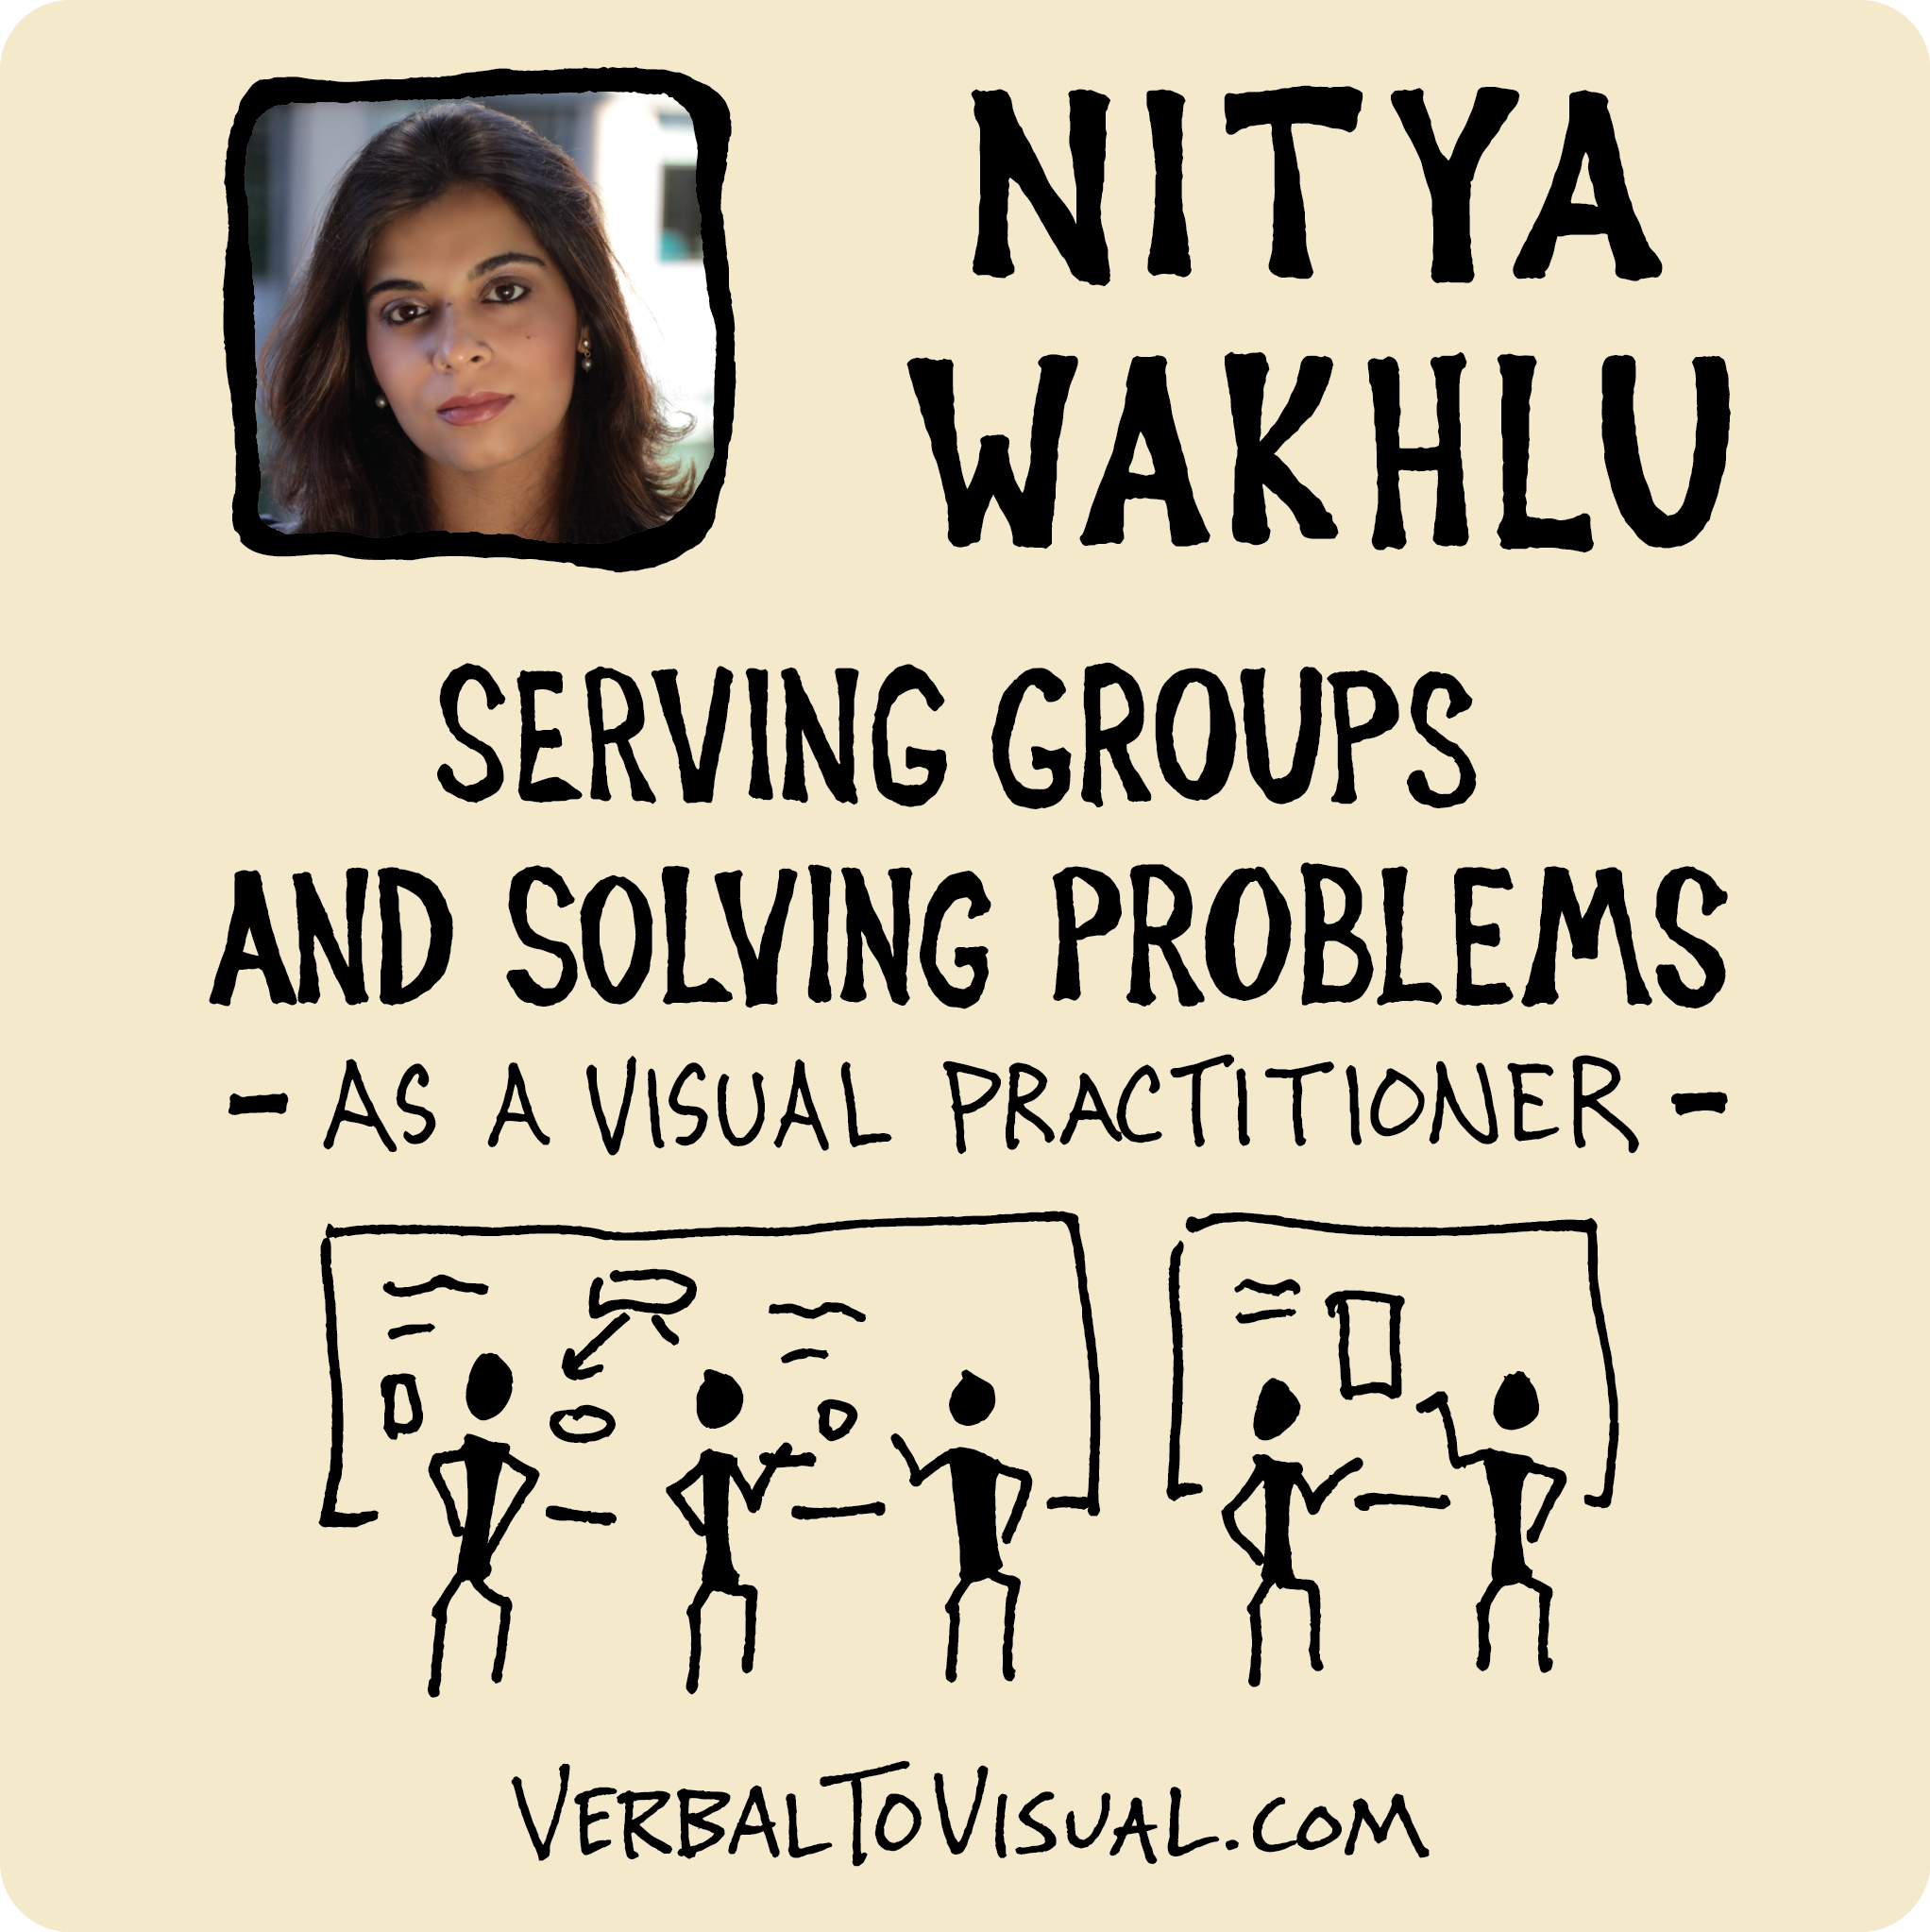 Nitya Wakhlu - Serving Groups And Solving Problems As A Visual Practitioner - The Verbal To Visual Podcast